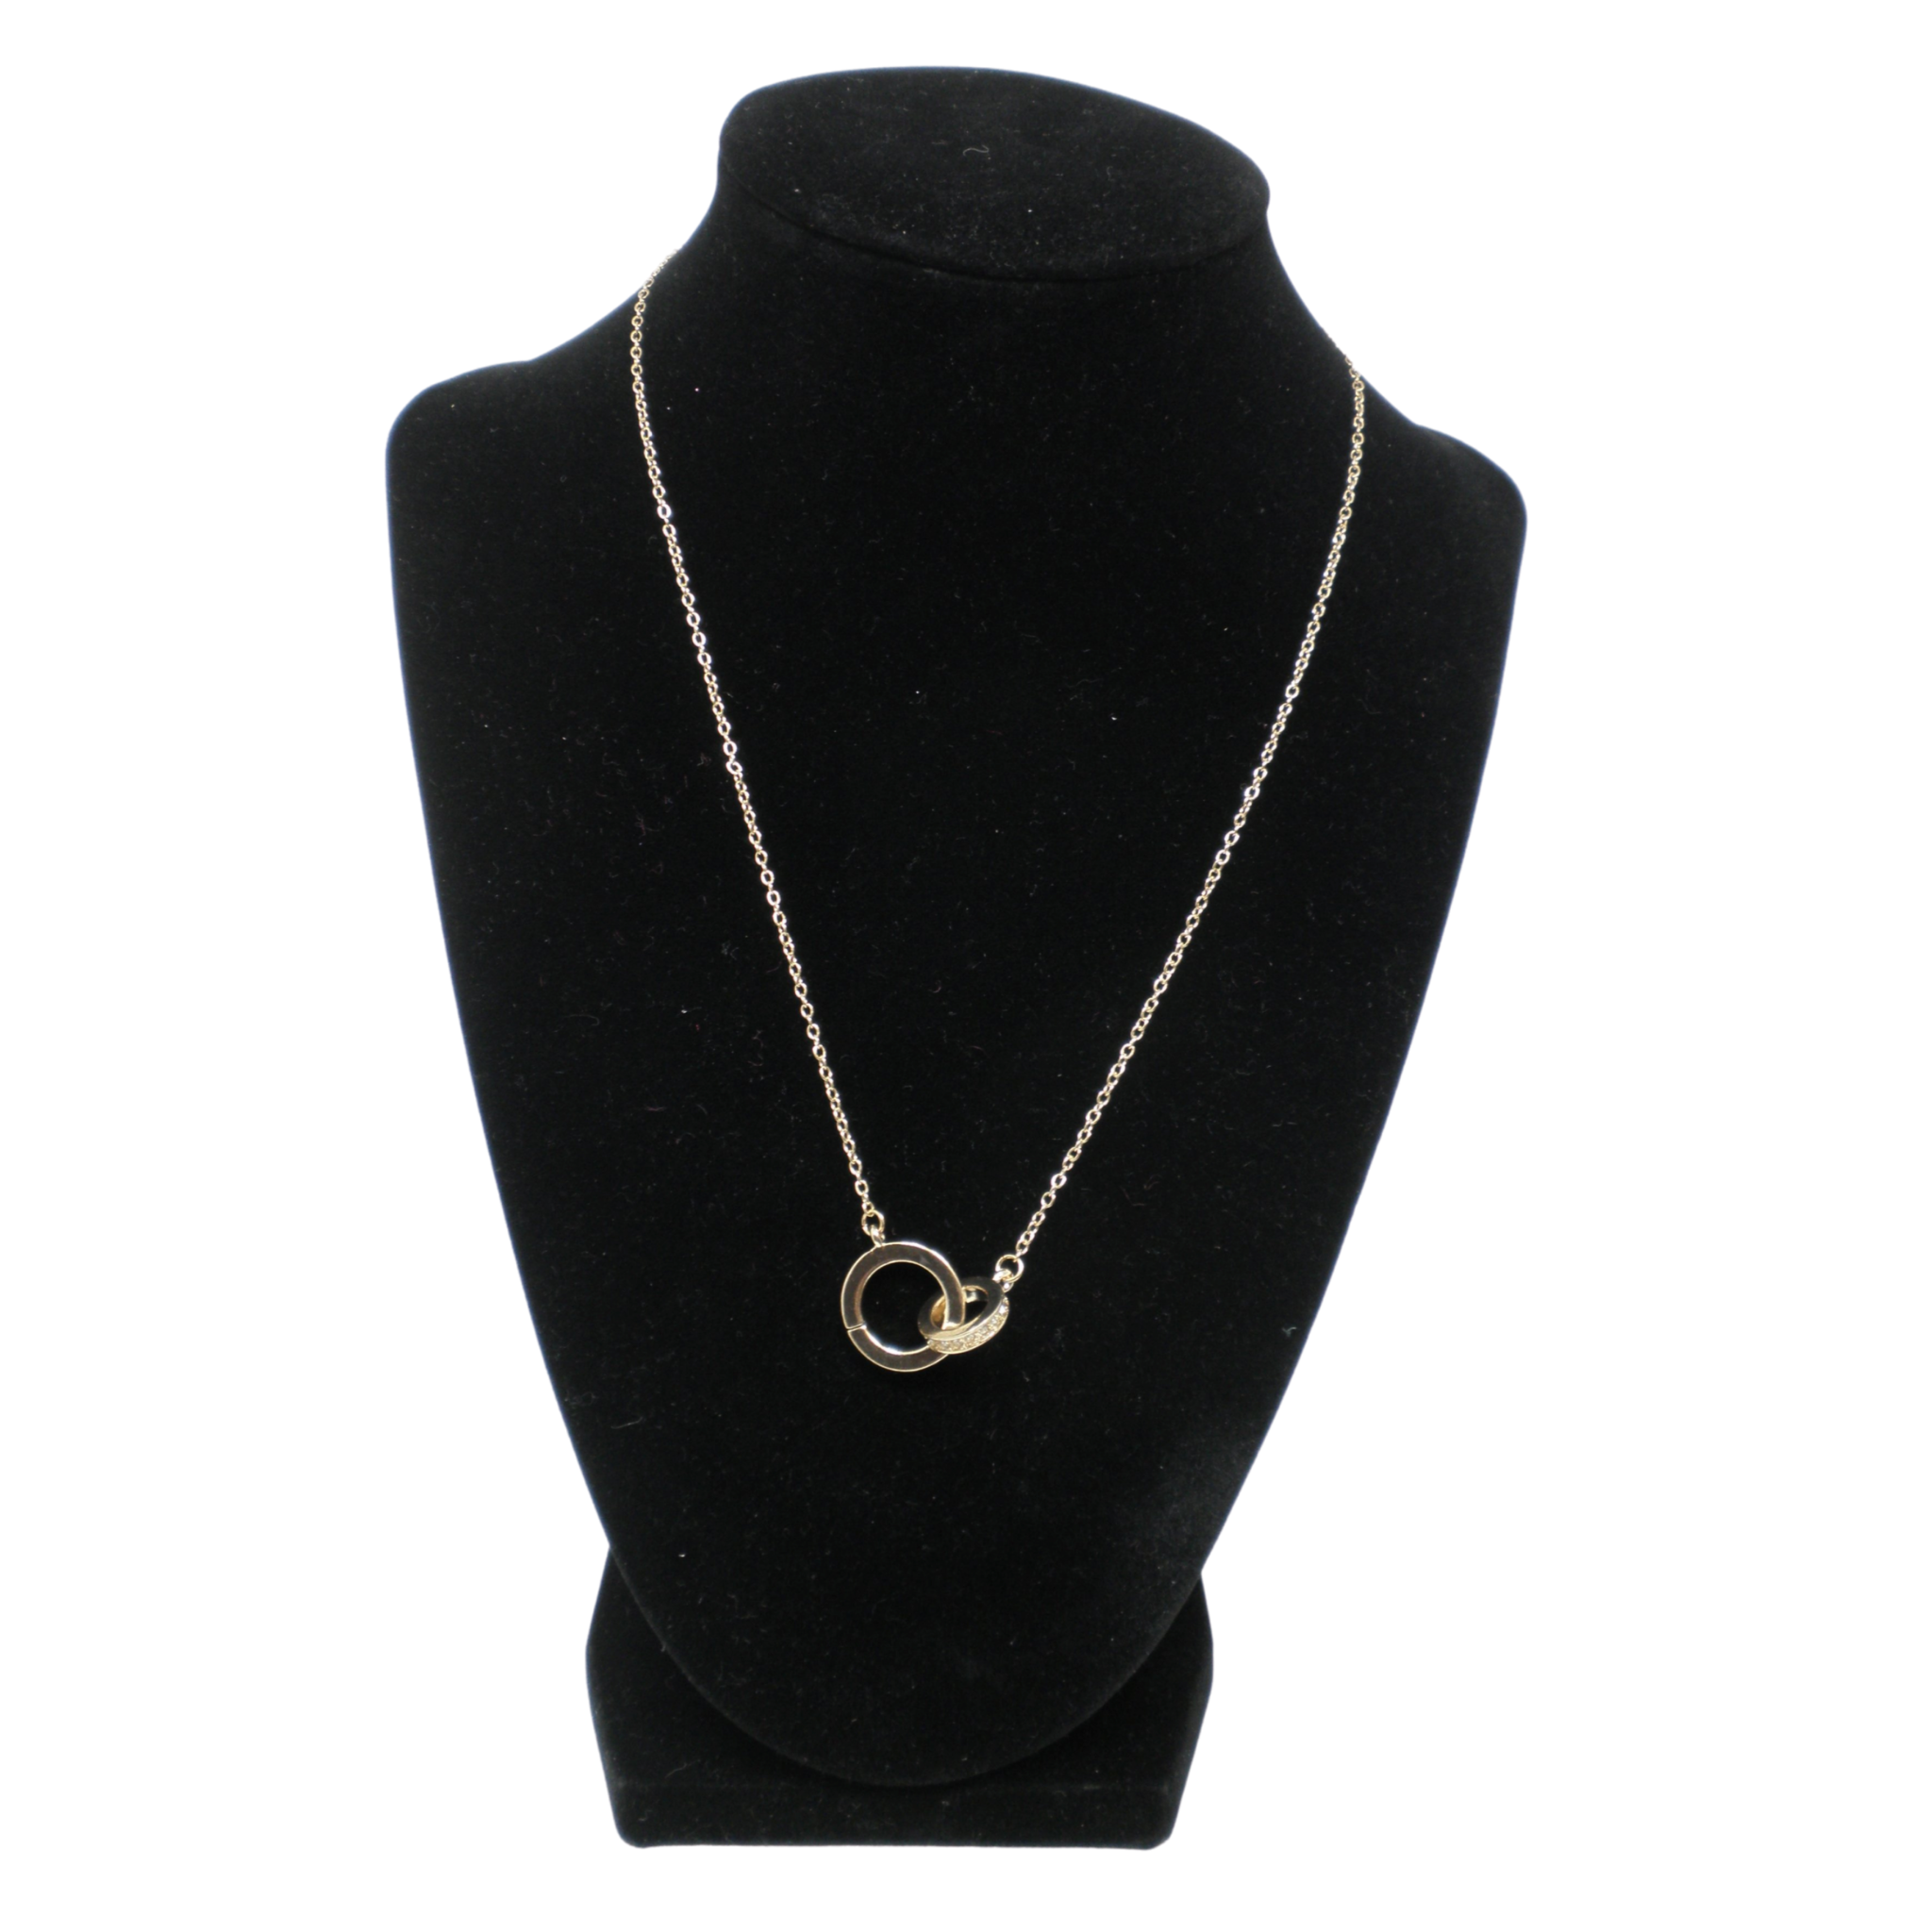 Gold Necklace with Interlocked Circles